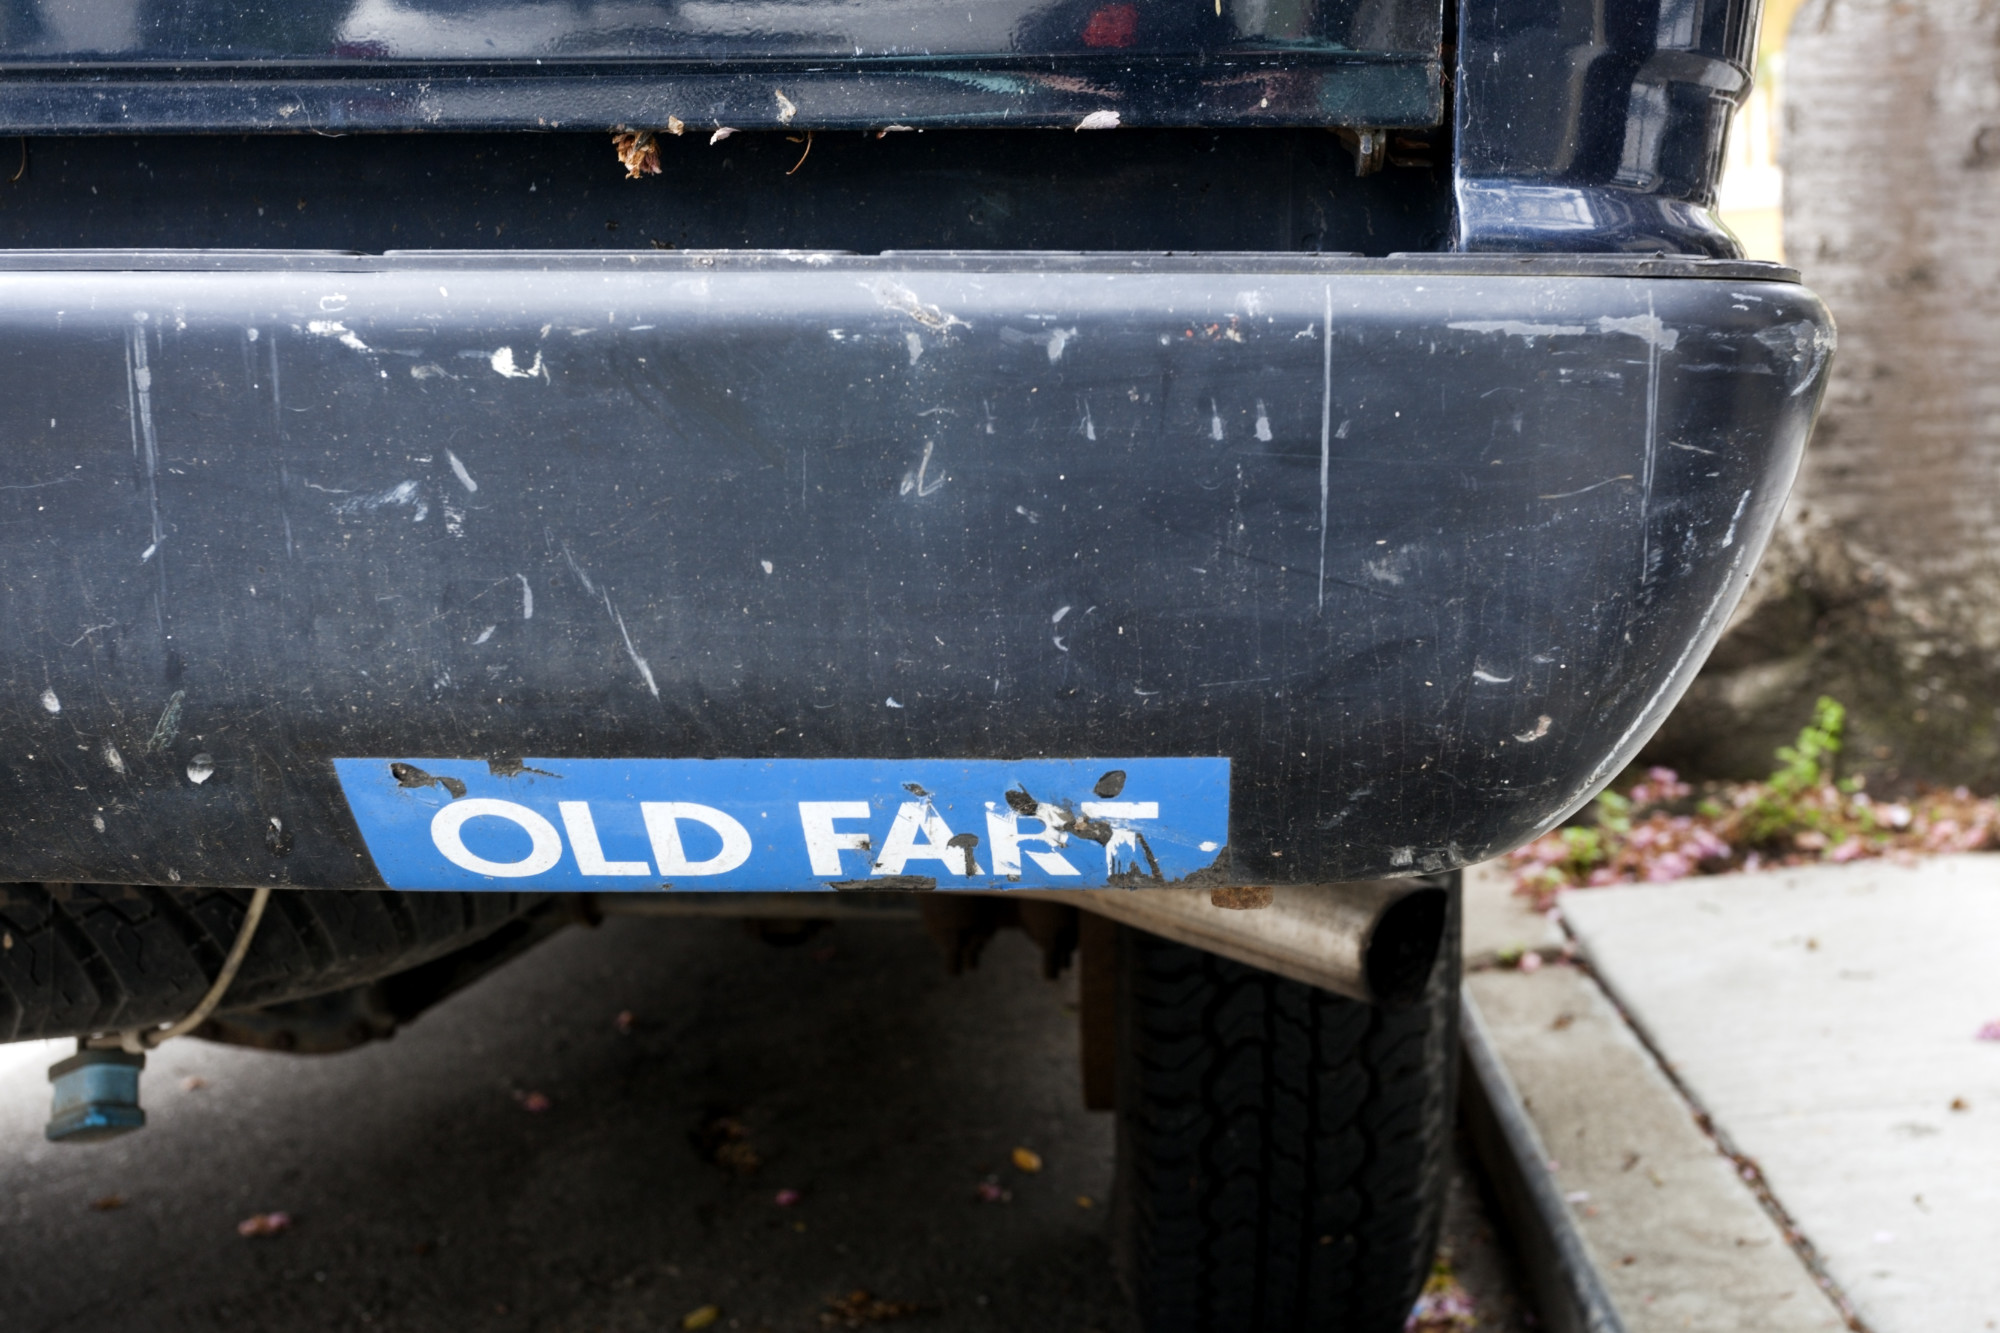 Old Fart graphic decal bumper sticker